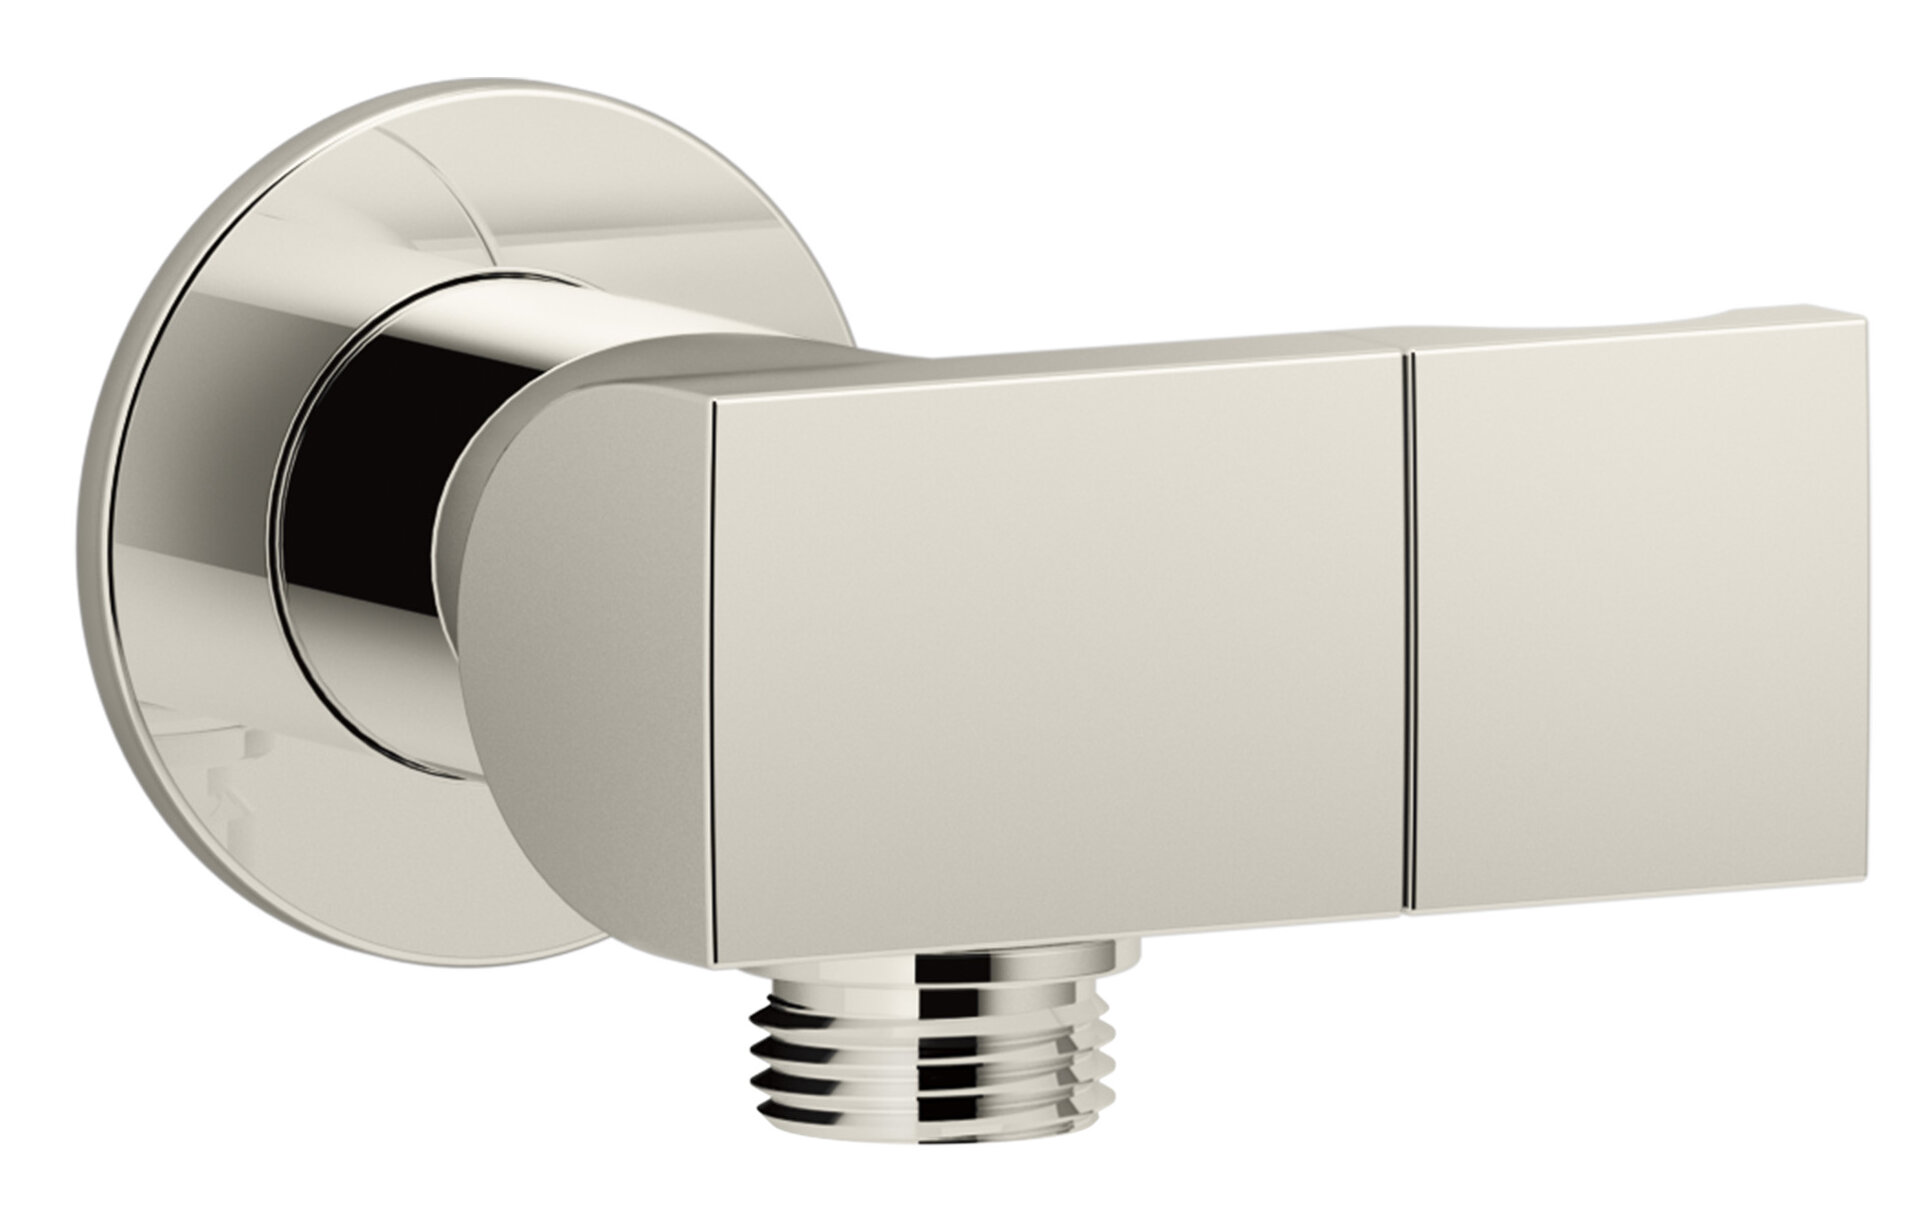 Kohler Exhale Wall Mount Supply Elbow With Check Valve And Handshower Bracket Reviews Wayfair